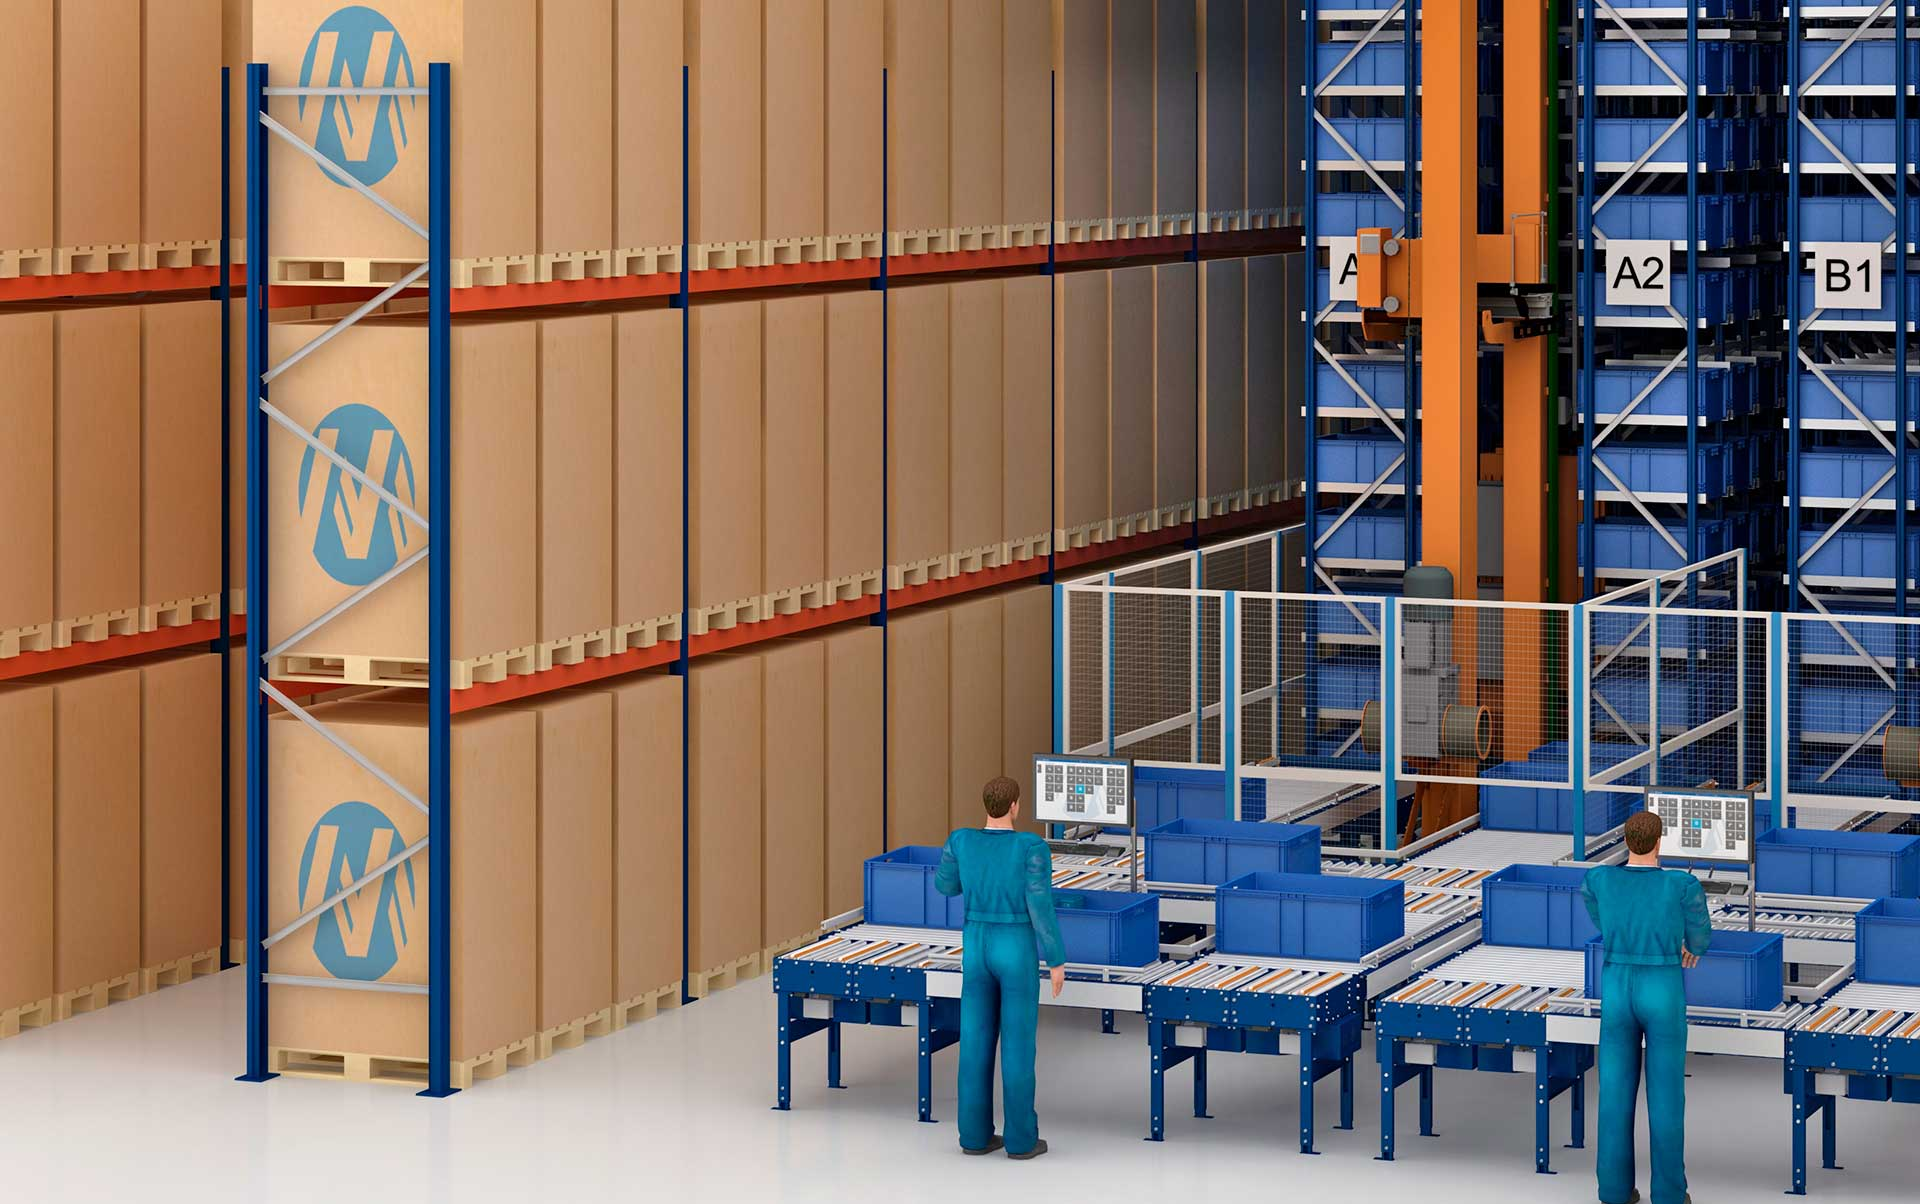 TLHP will digitalise all its logistics operations with the help of Easy WMS